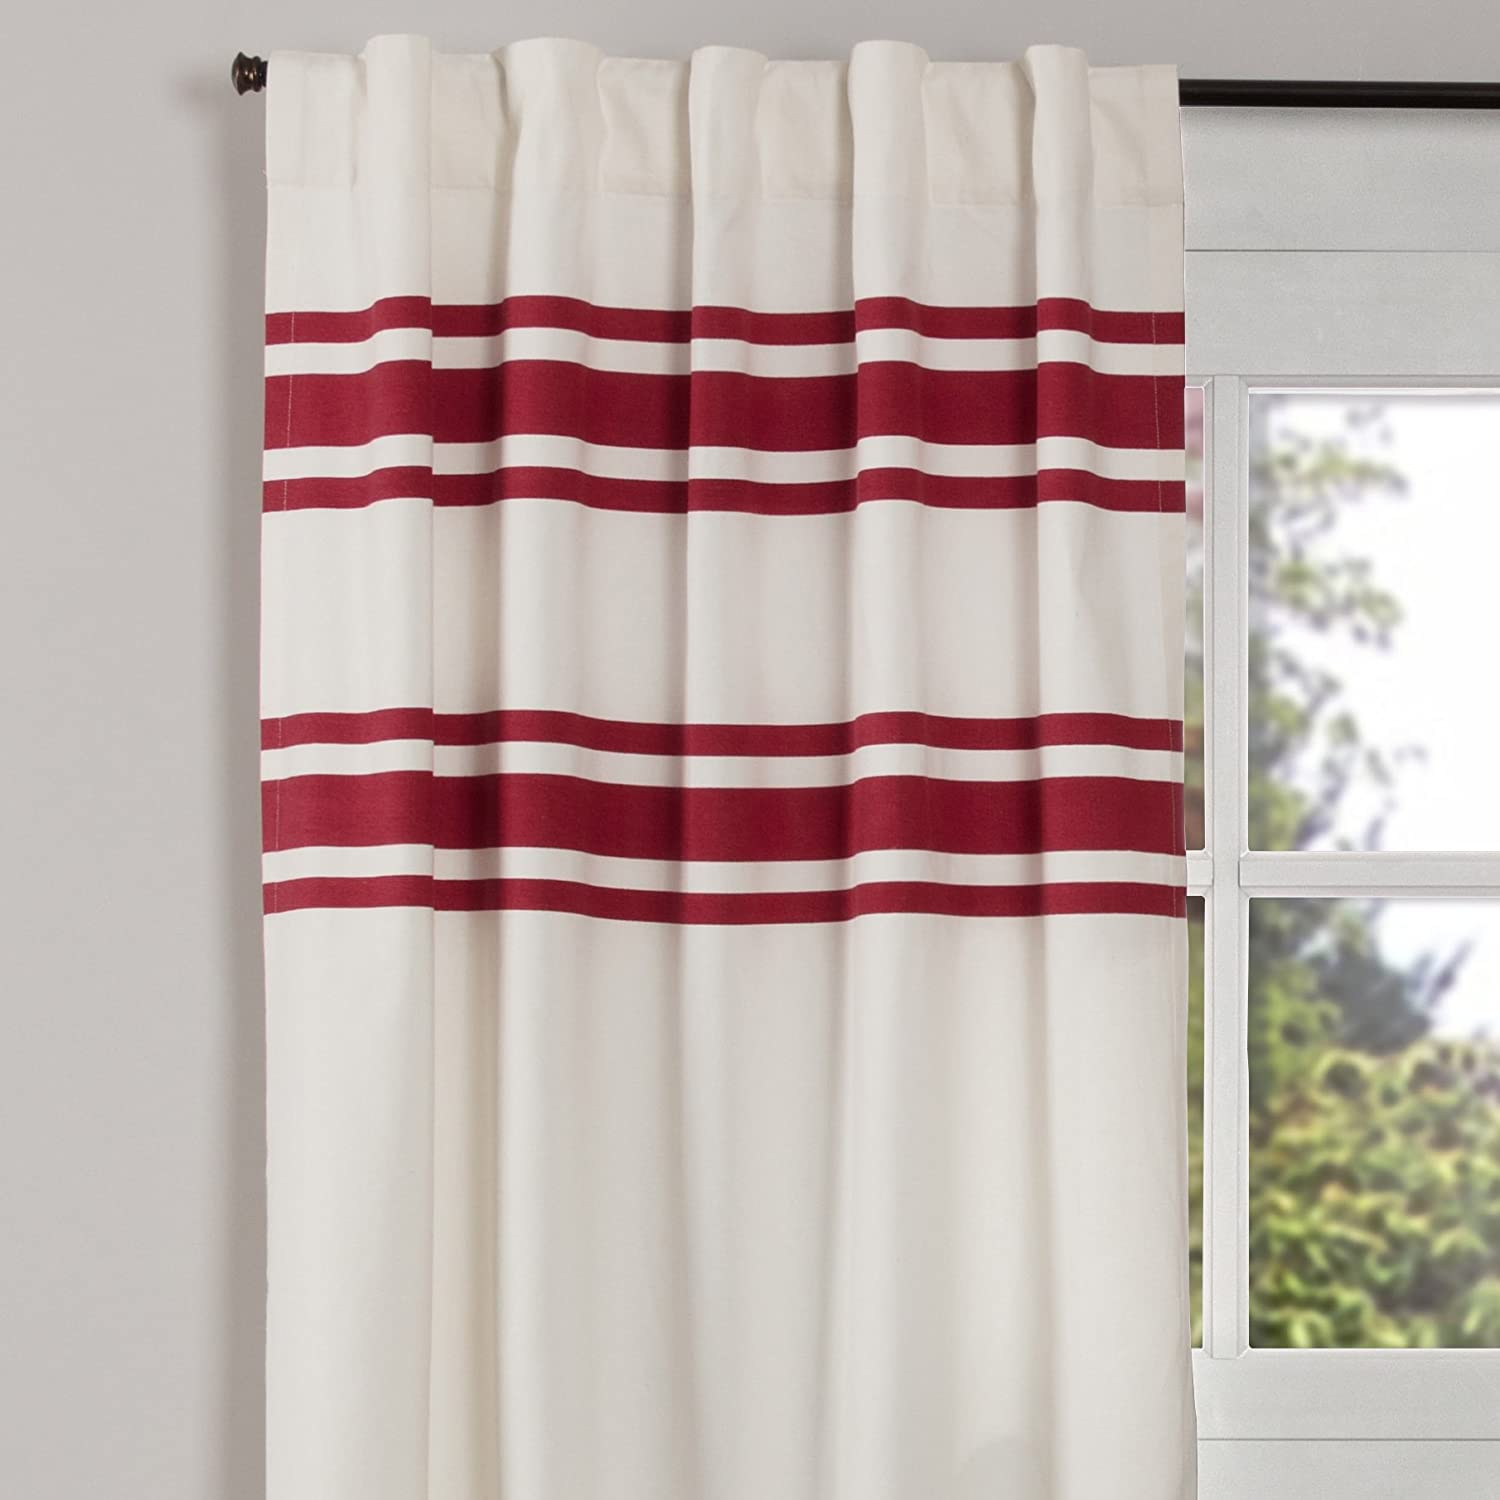 Piper Classics Silo Hill Red Stripe Panel Curtains, Set of 2, 84  Long, Farmhouse Style Antique White Drapes